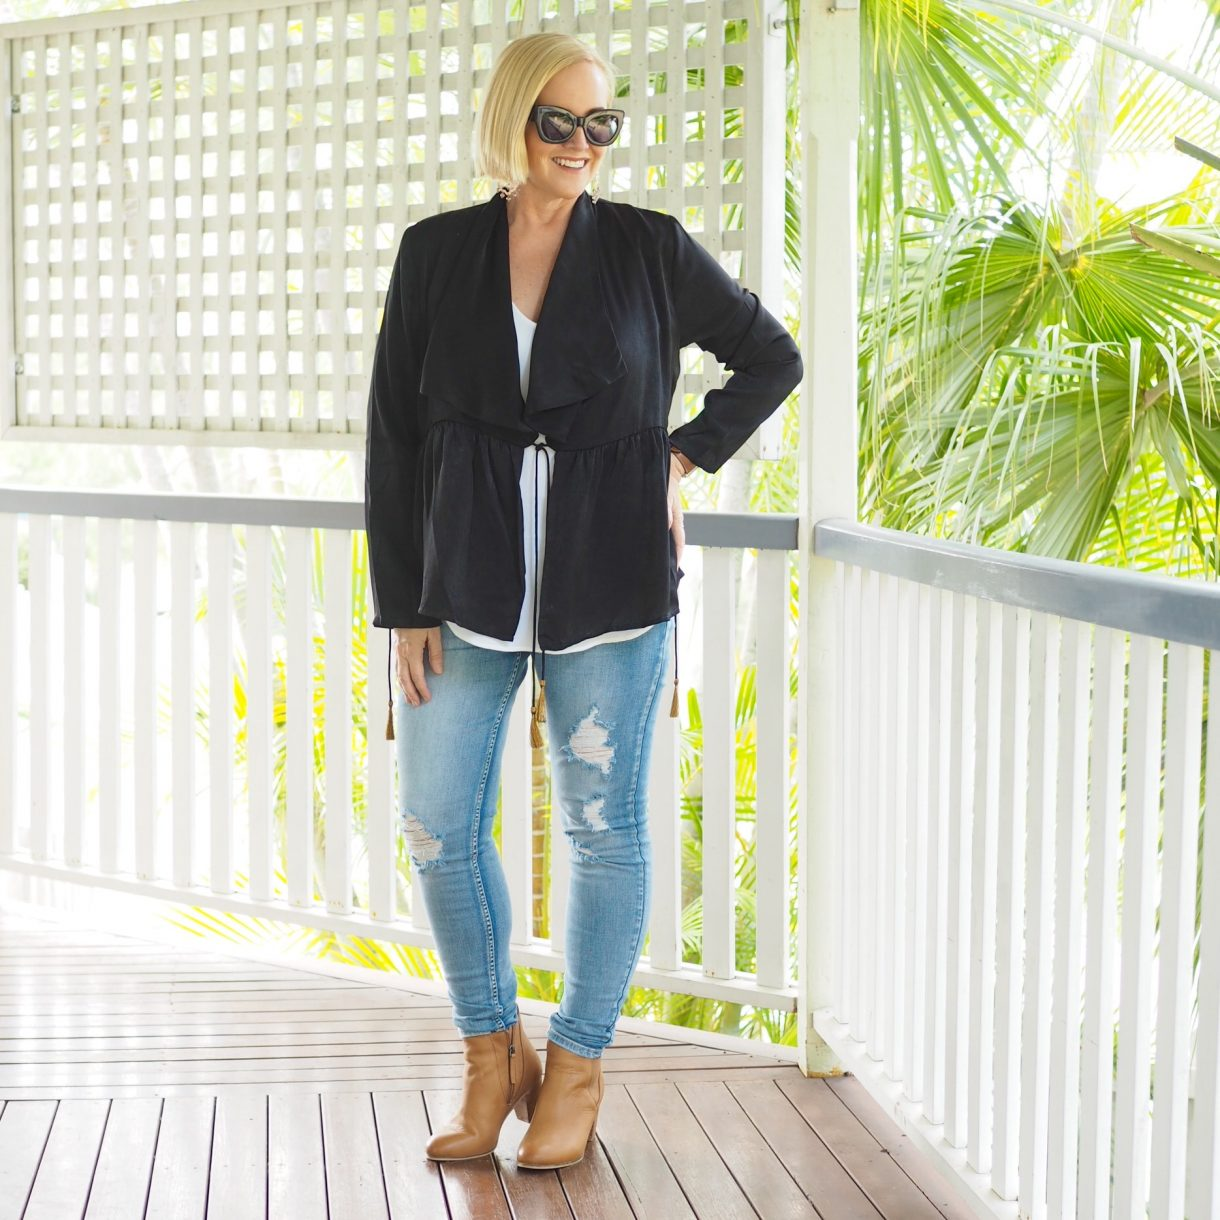 Bohemian Traders waterfall jacket with bronze tassels and distressed denim jeans